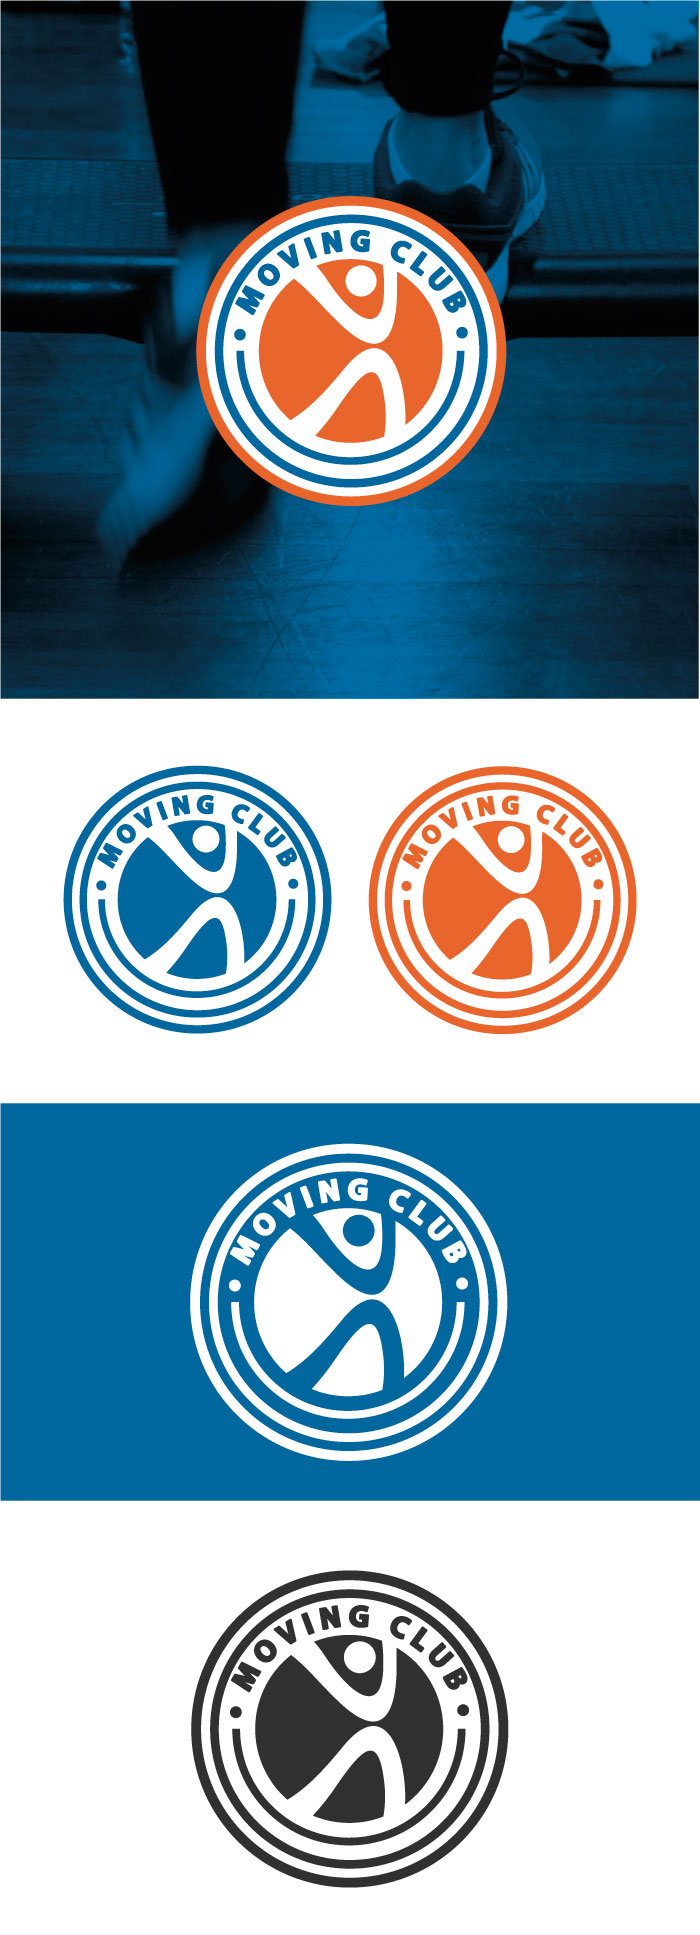 Moving Club - Logo, napoli, palestra, logo, moving, sport, grsphic design, diana petrarca